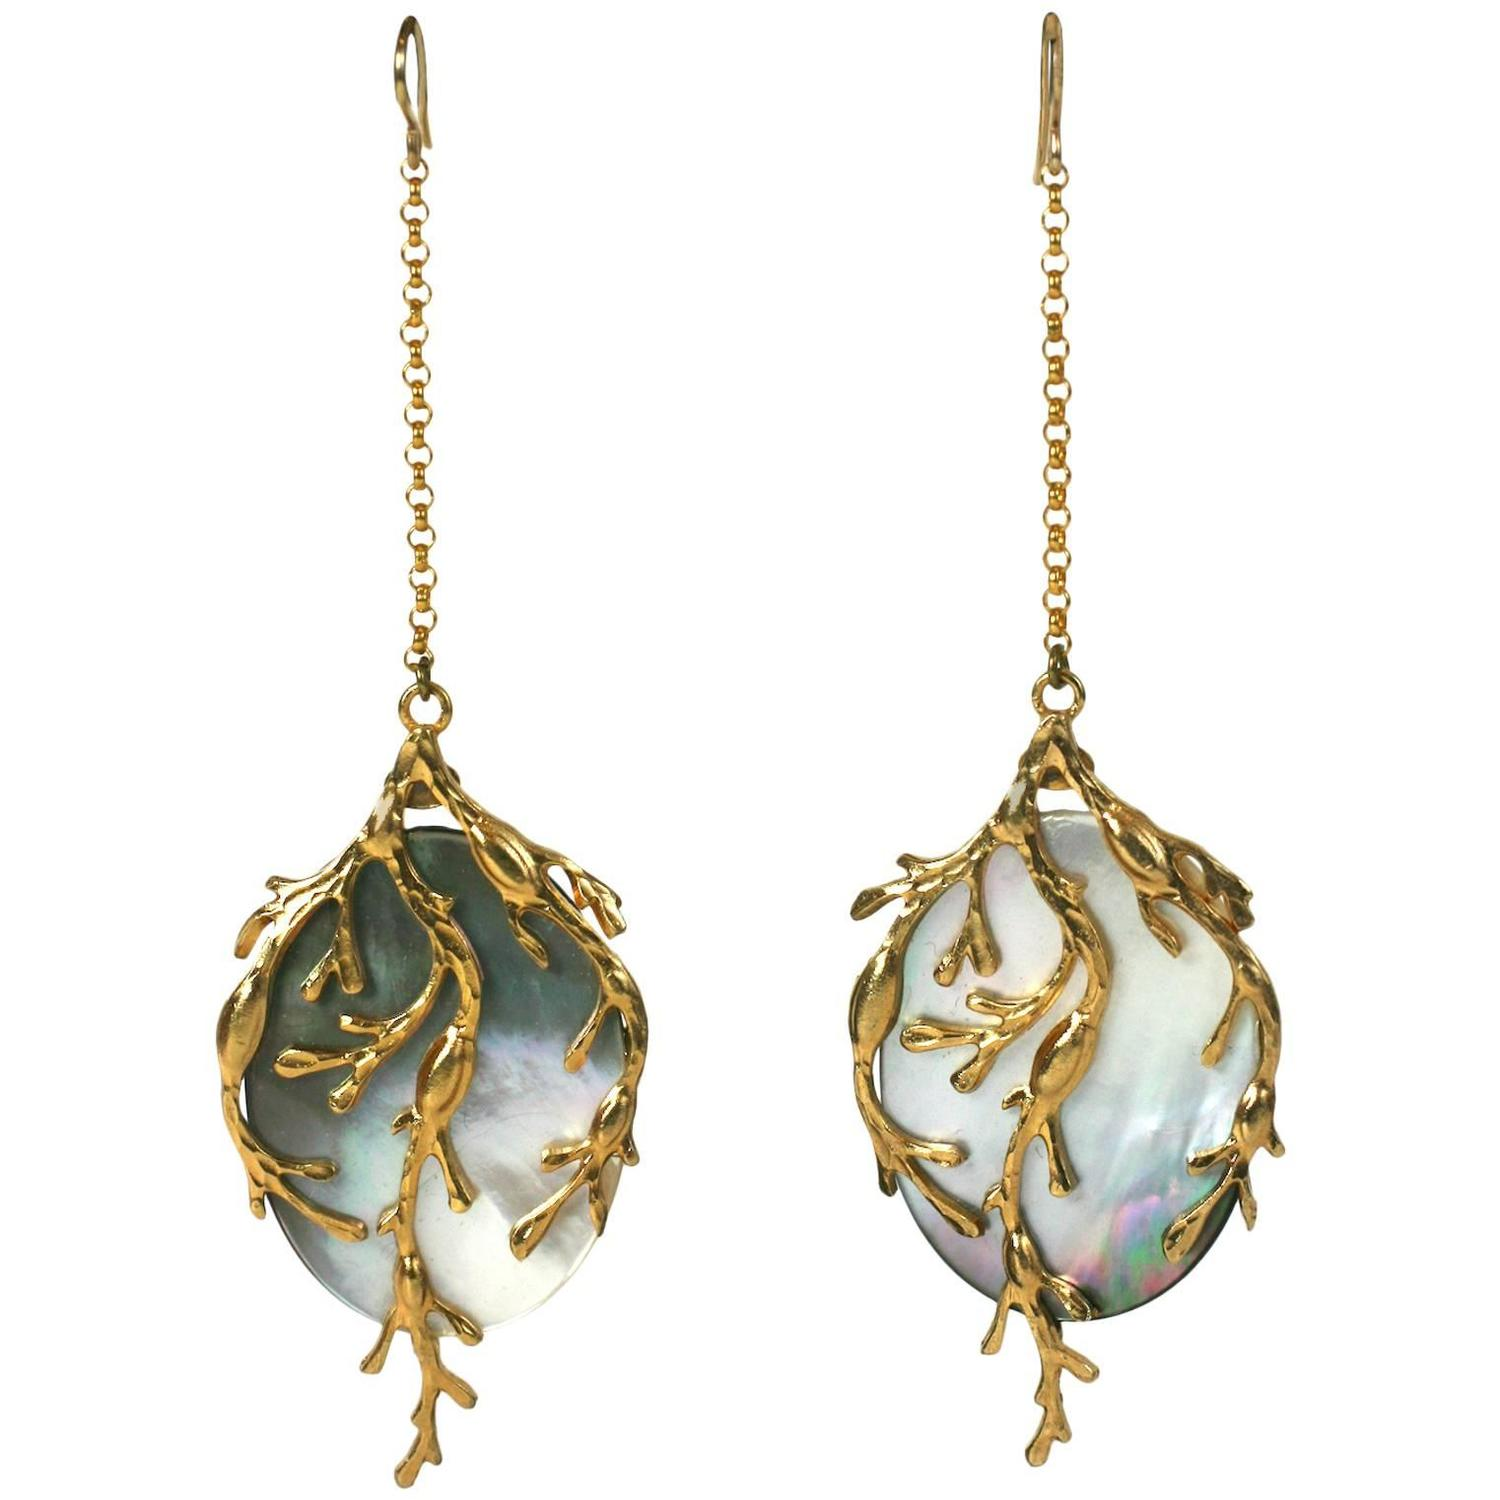 """Pearl Jewellery Necklace >> White Mother of Pearl """"Seaweed"""" Earrings, MWLC For Sale at 1stdibs"""